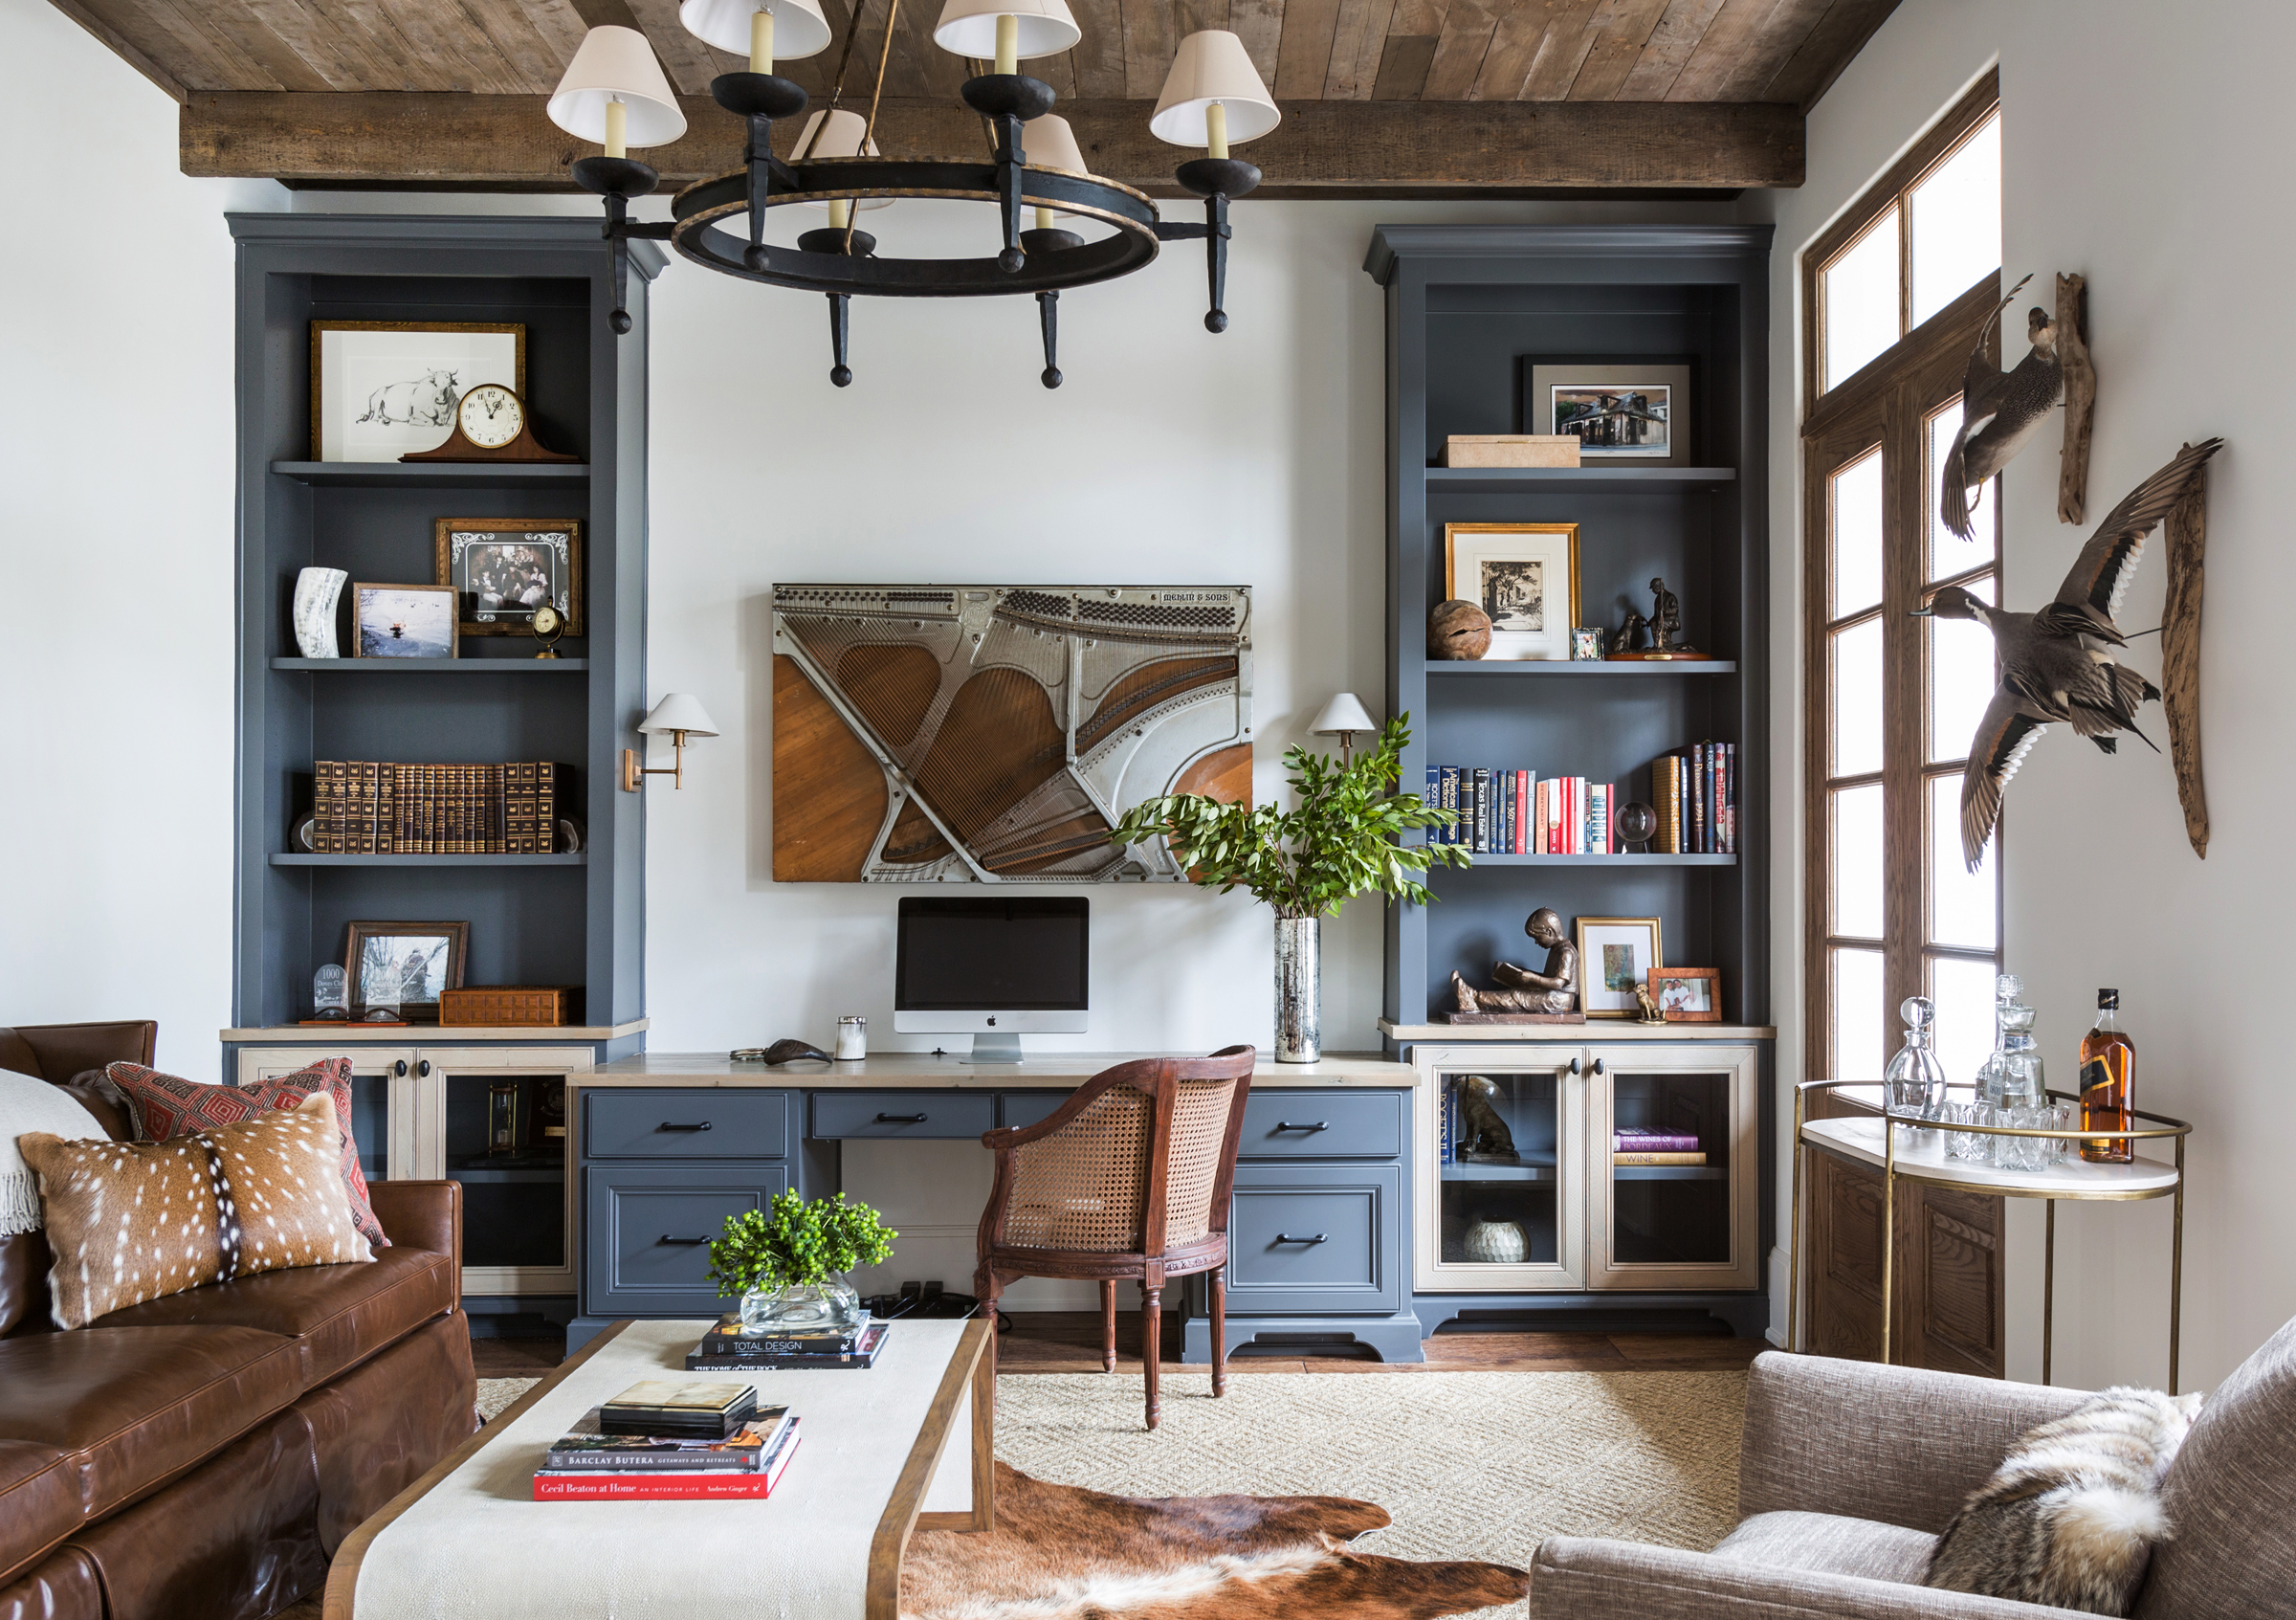 Award-Winning-Interior-Design-Marie-Flanigan-Office-Blue-Cabinets-Ceiling-Beams-Antiques.jpg